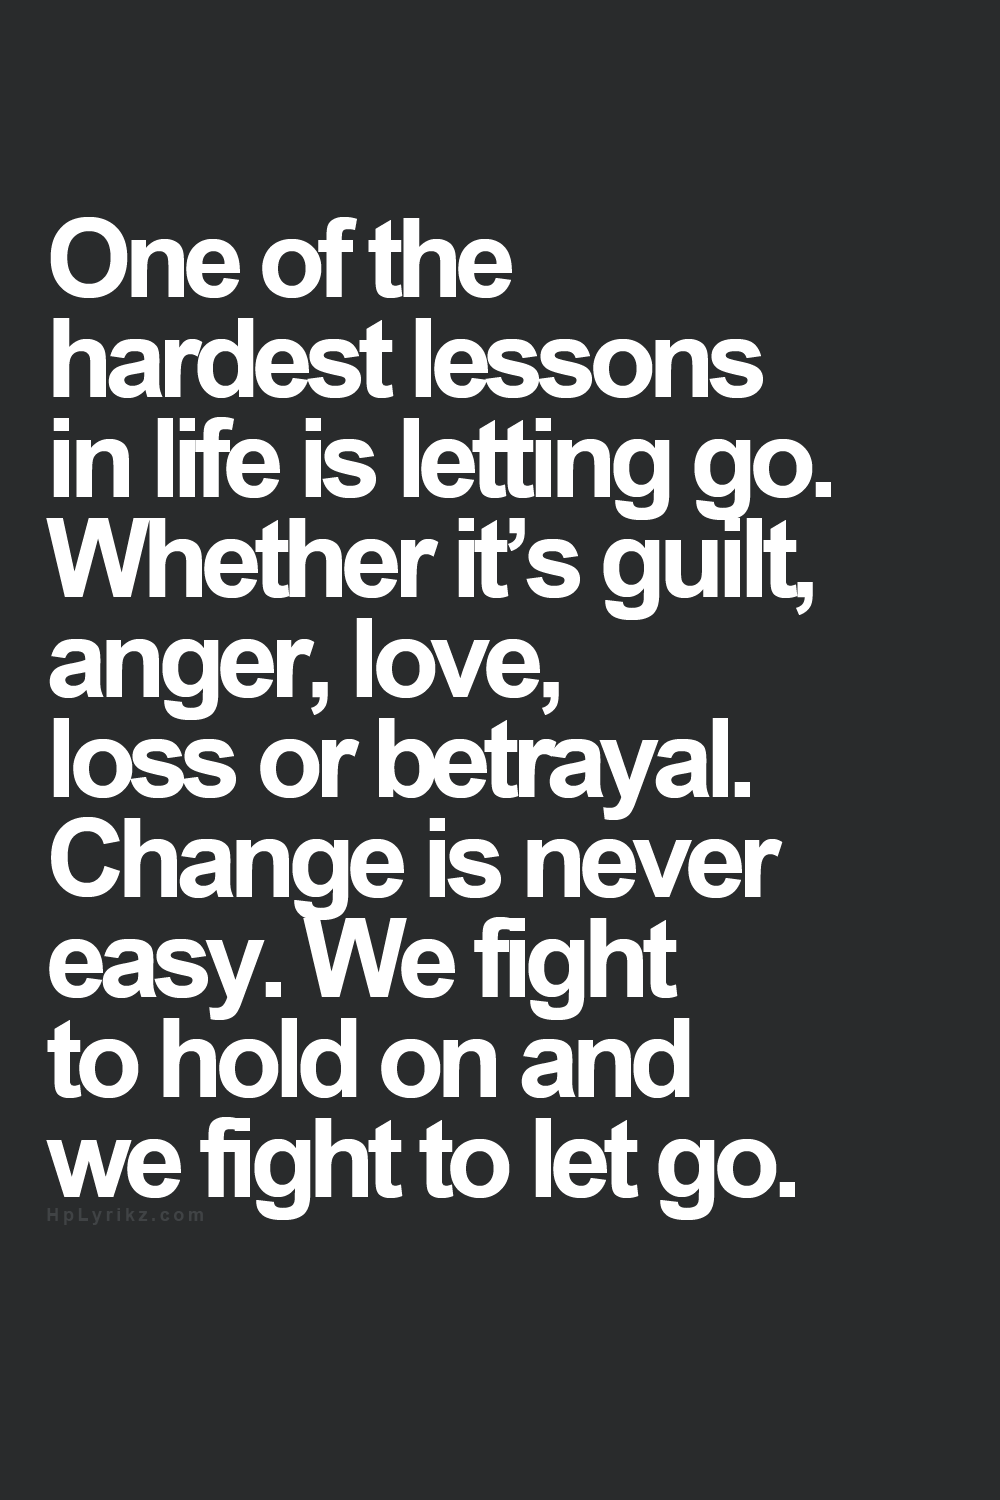 e of the hardest lessons in life is letting go Whether it s guilt anger